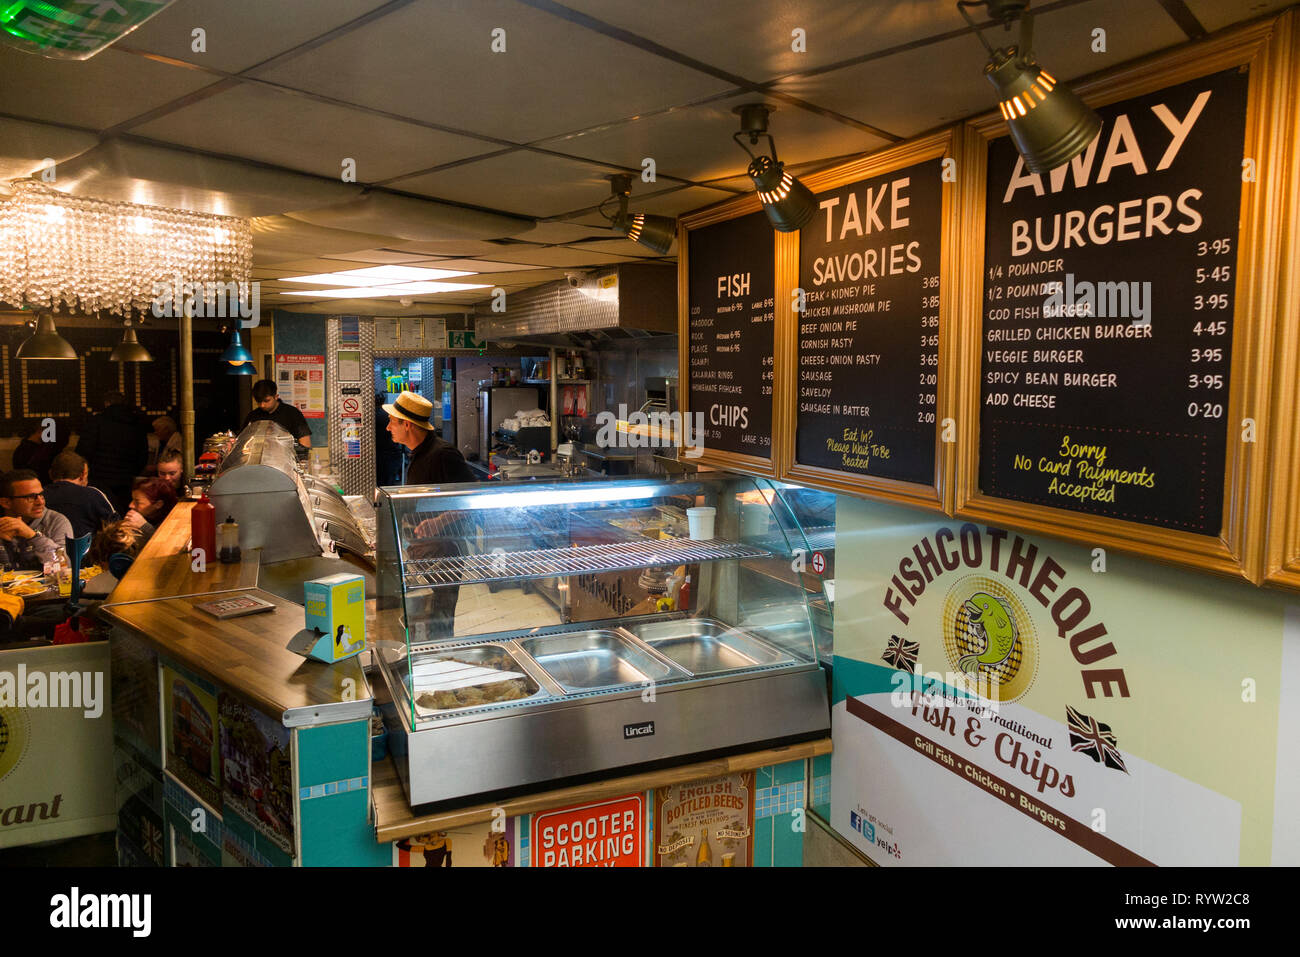 Interior / inside of Fish and chip restaurant / shop named Fishcotheque – 79A Waterloo Rd, Lambeth – near Waterloo station in London. UK (107) - Stock Image